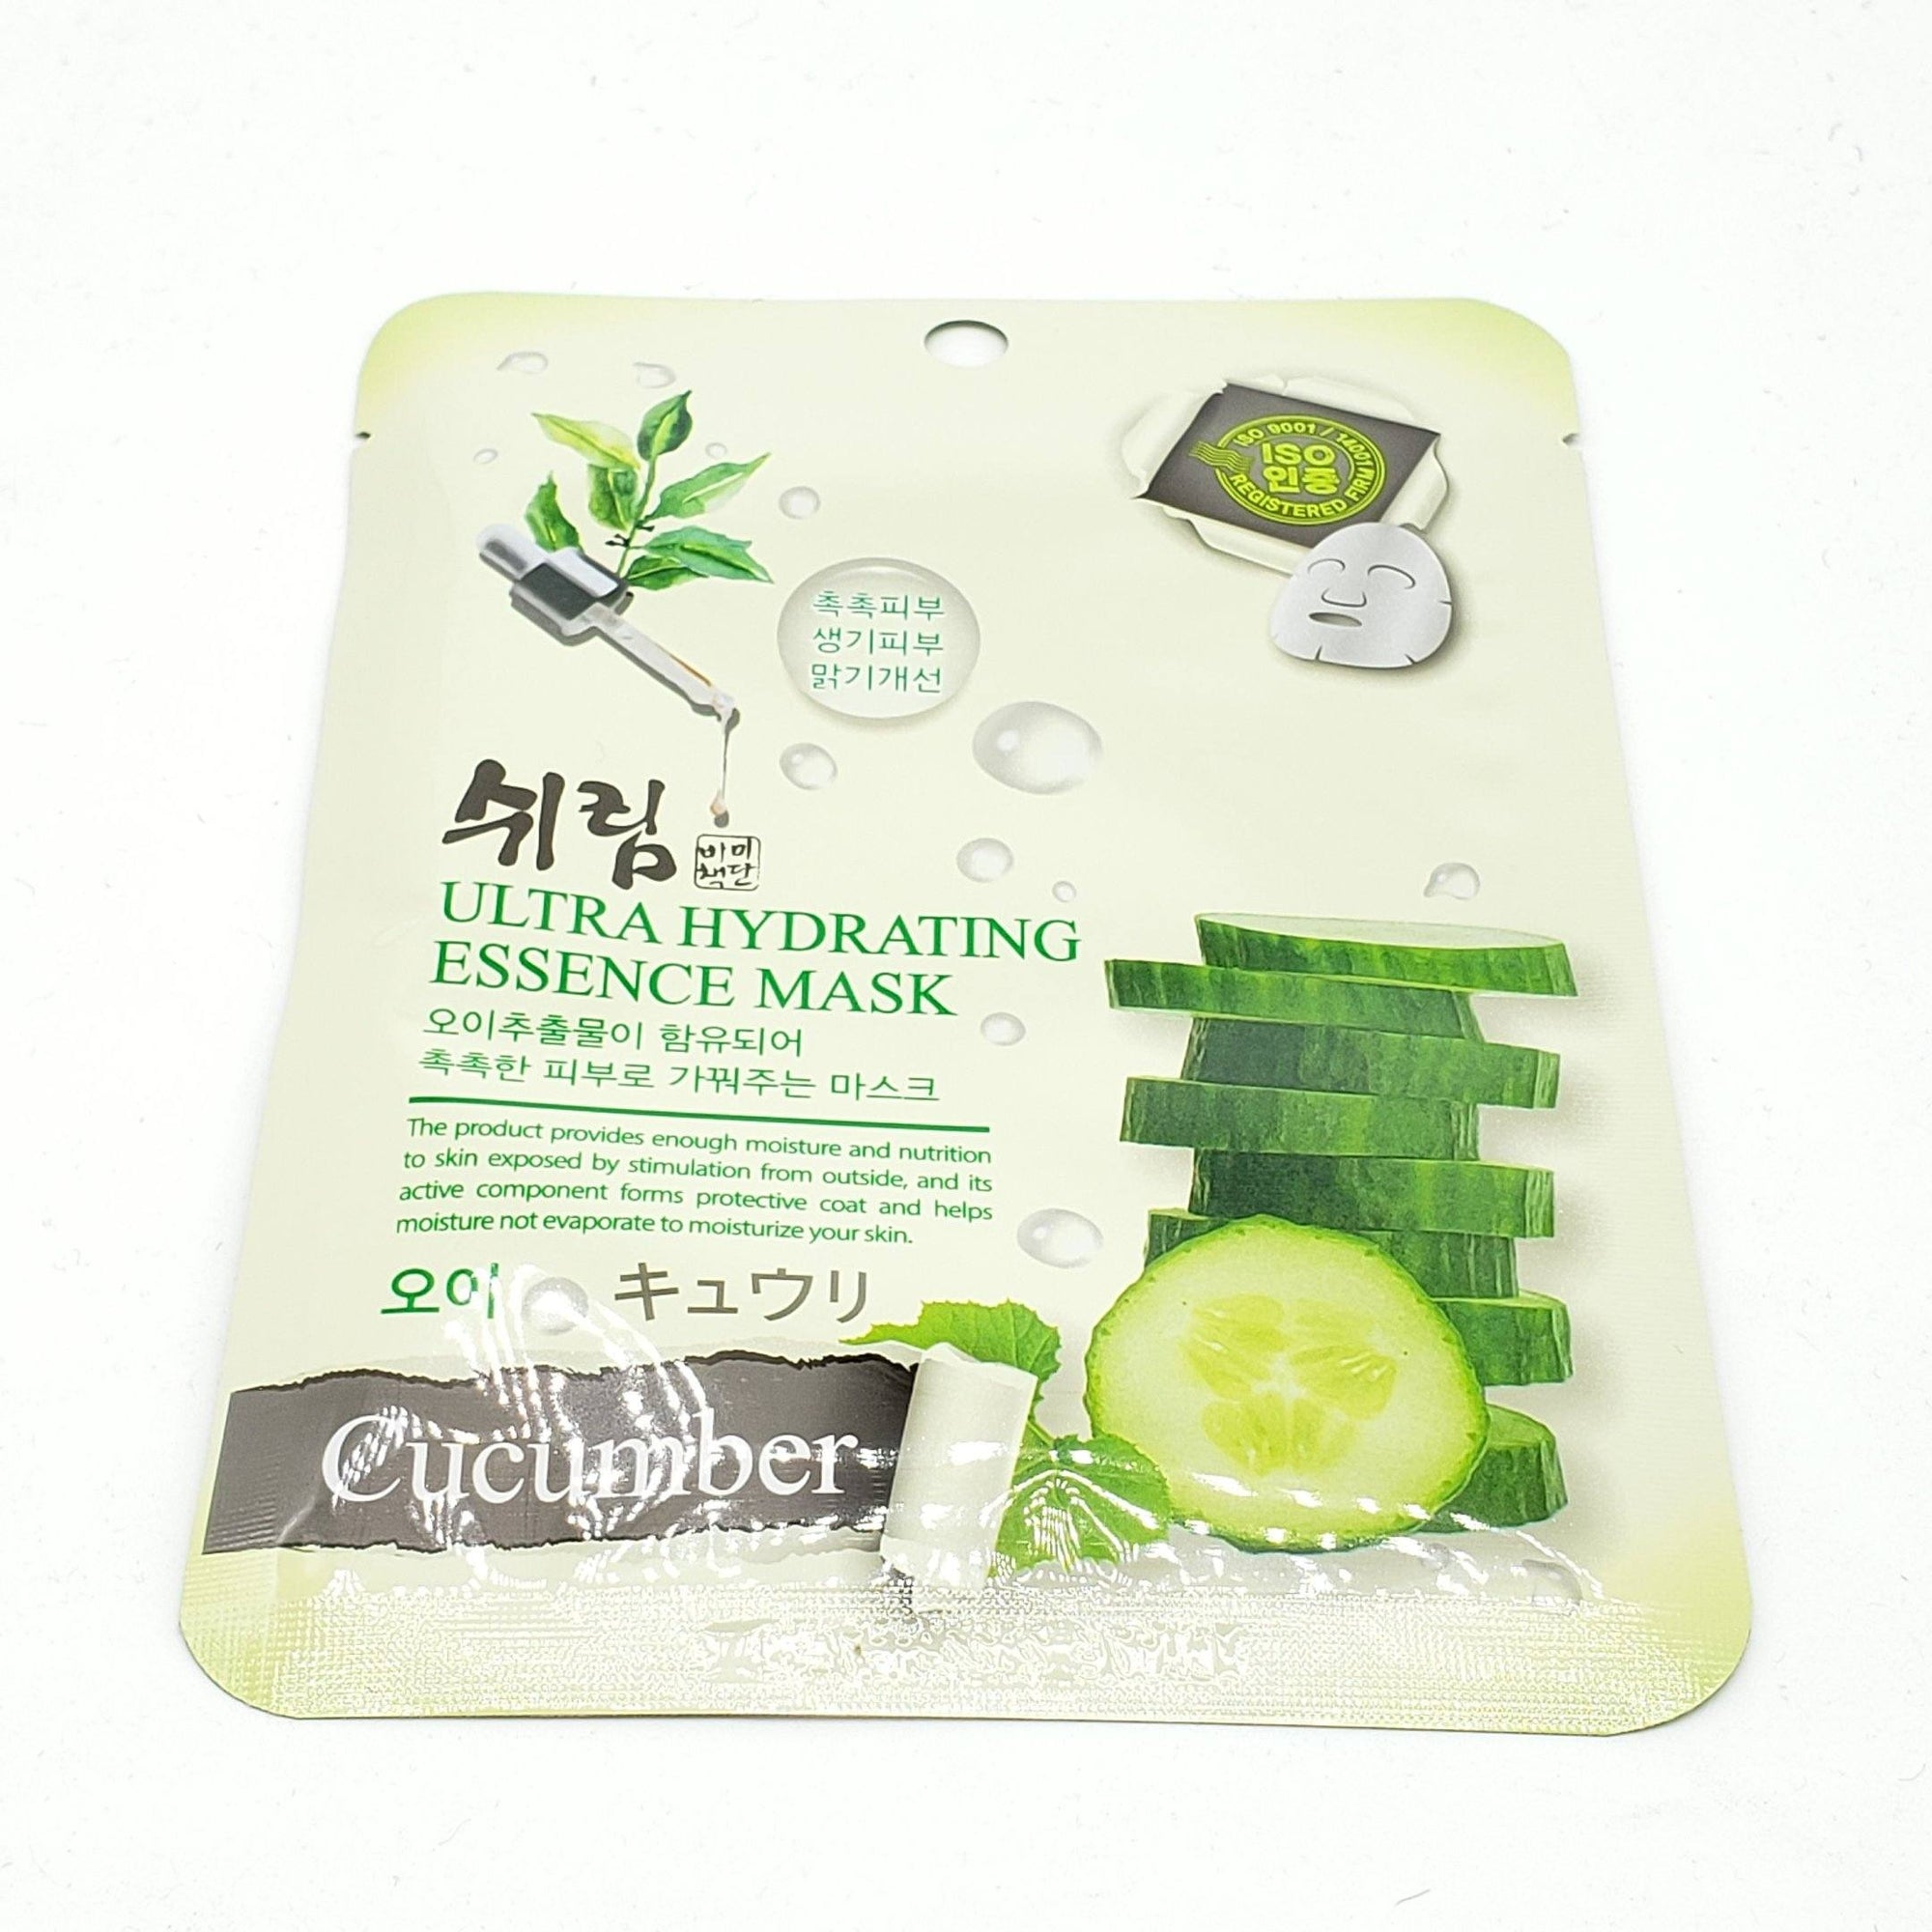 Shelim Facial Essence Mask Pack, Cucumber (10PC)